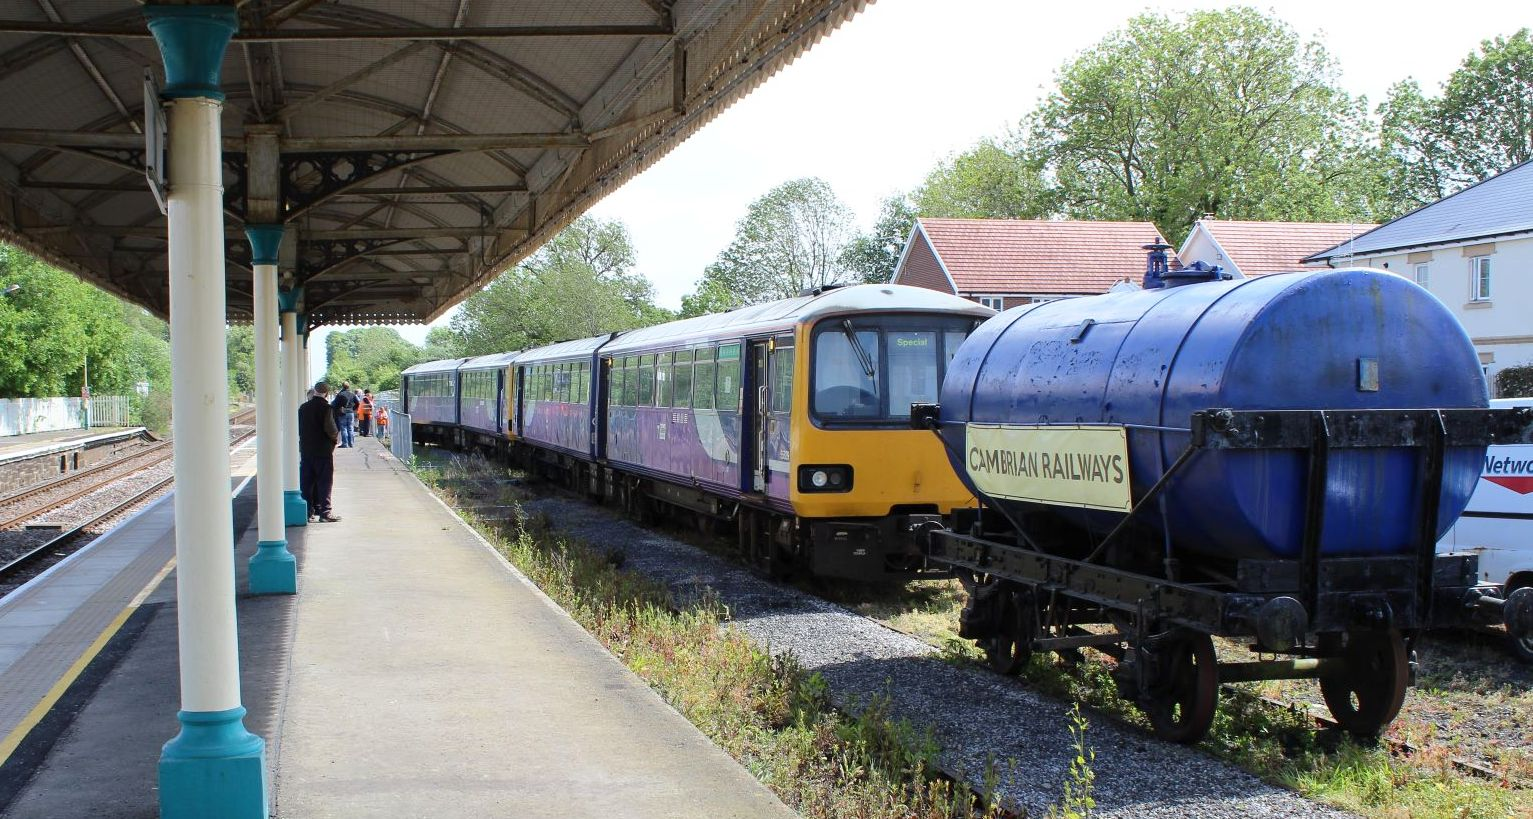 Pacer at Gobowen